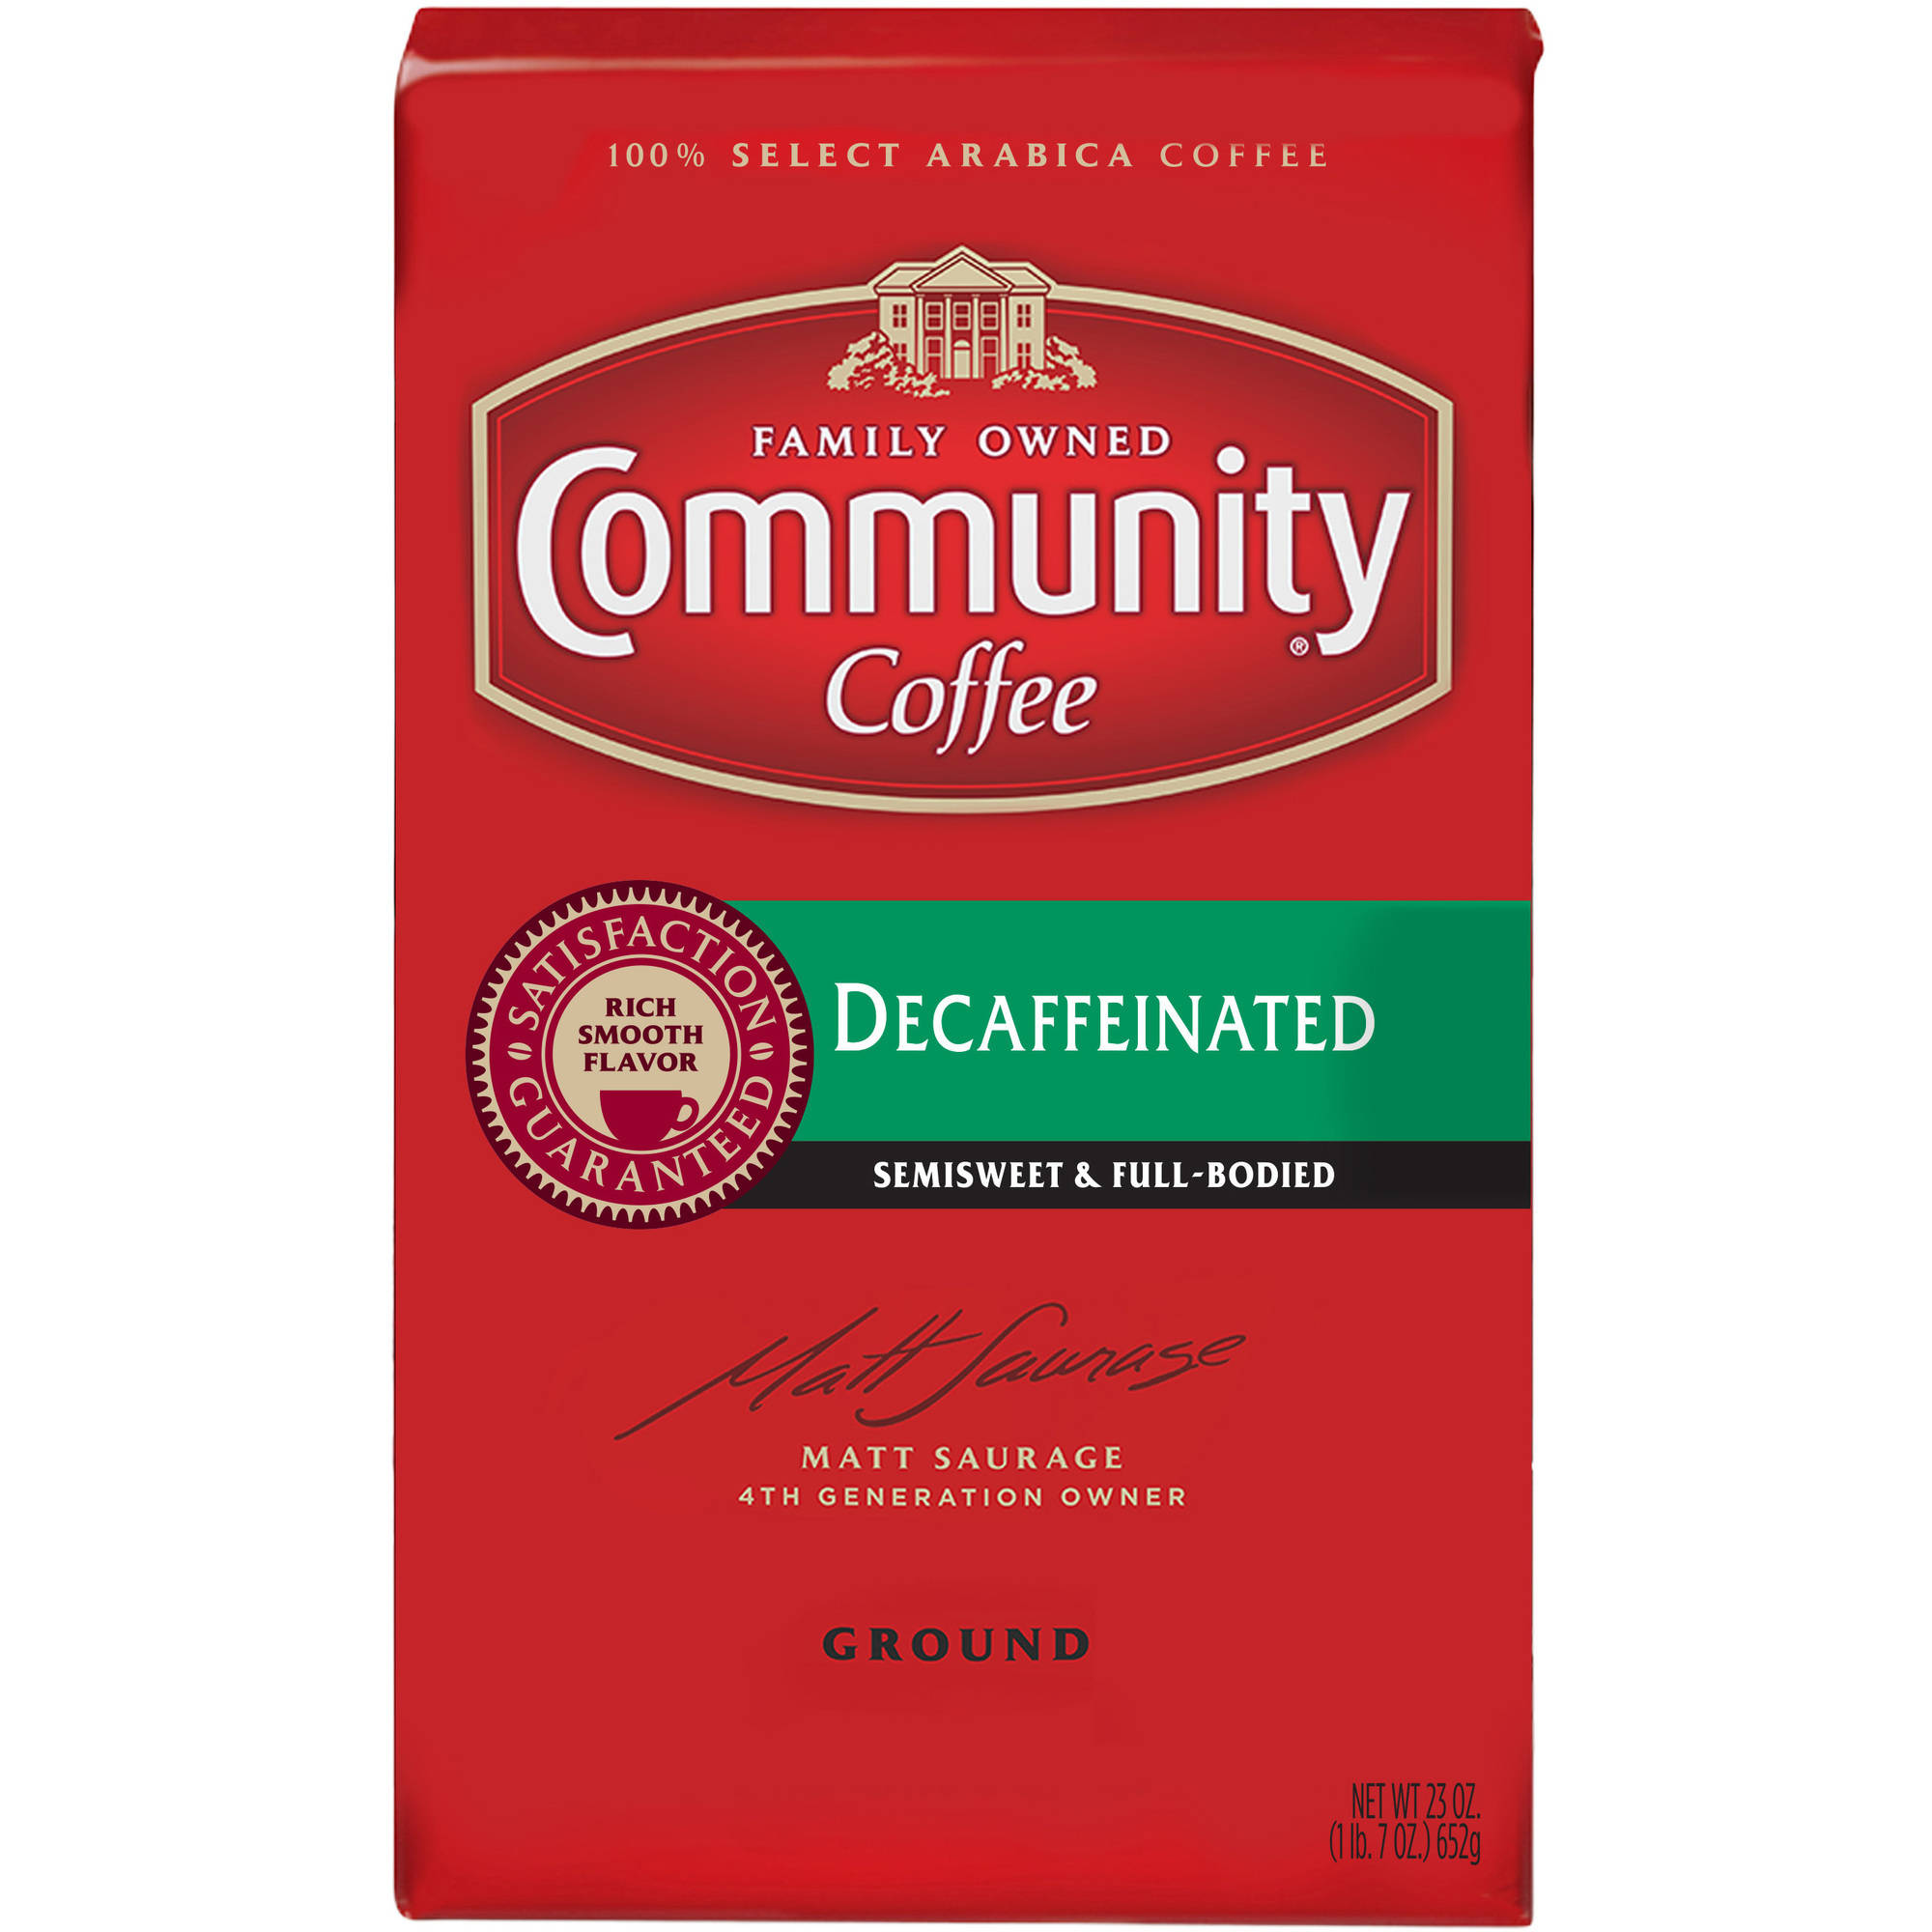 Community Coffee Premium Ground Decaffeinated Medium-Dark Roast Coffee, 23 Ounce